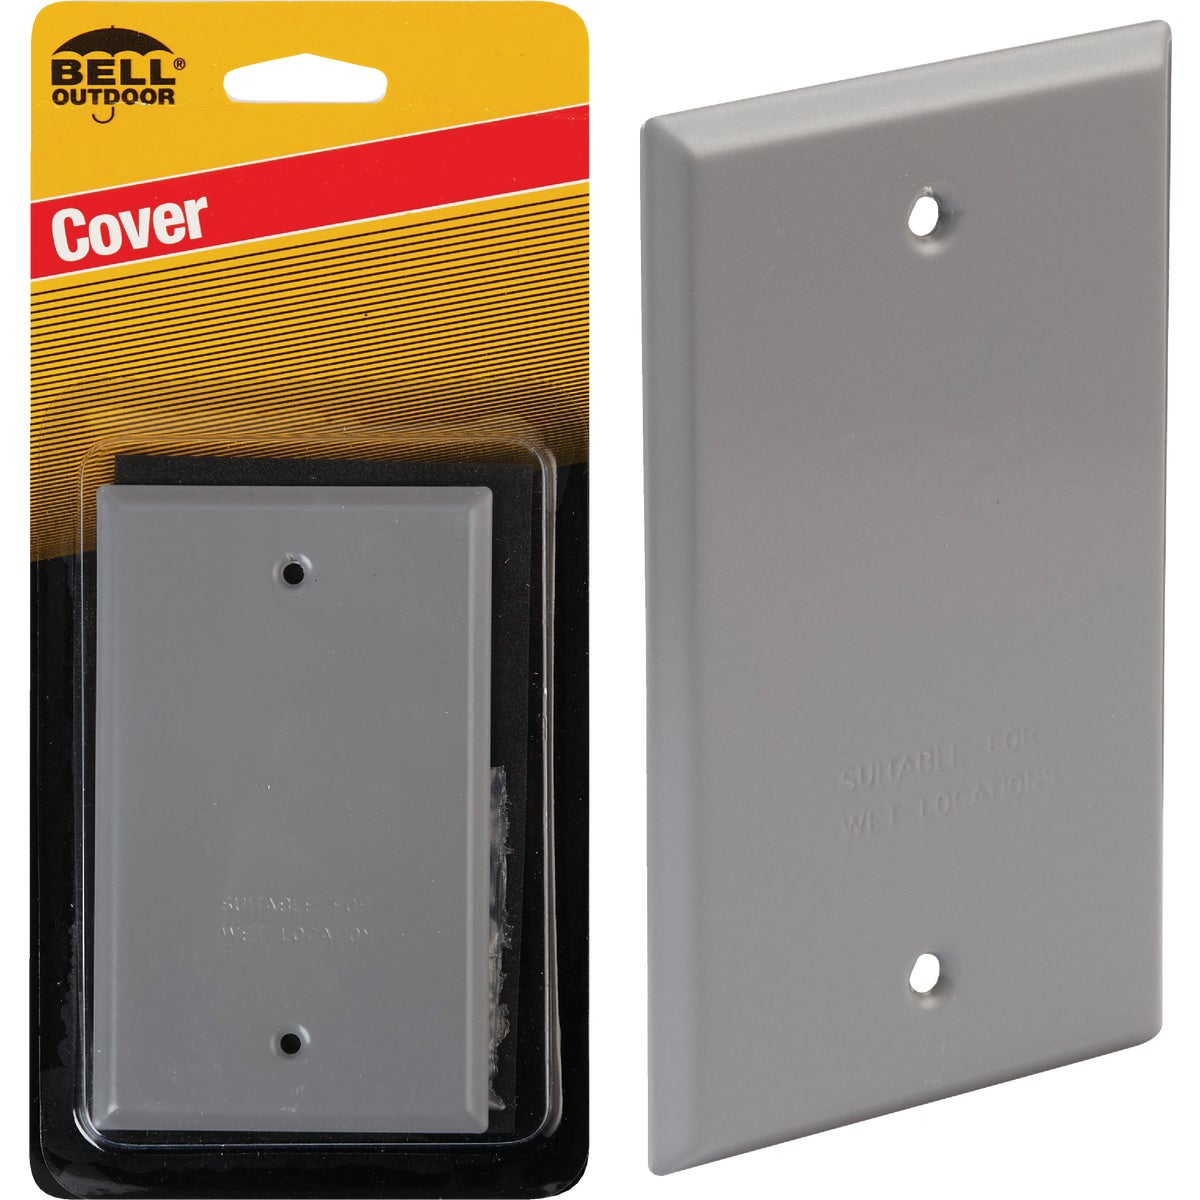 OUTDOOR BLANK COVER